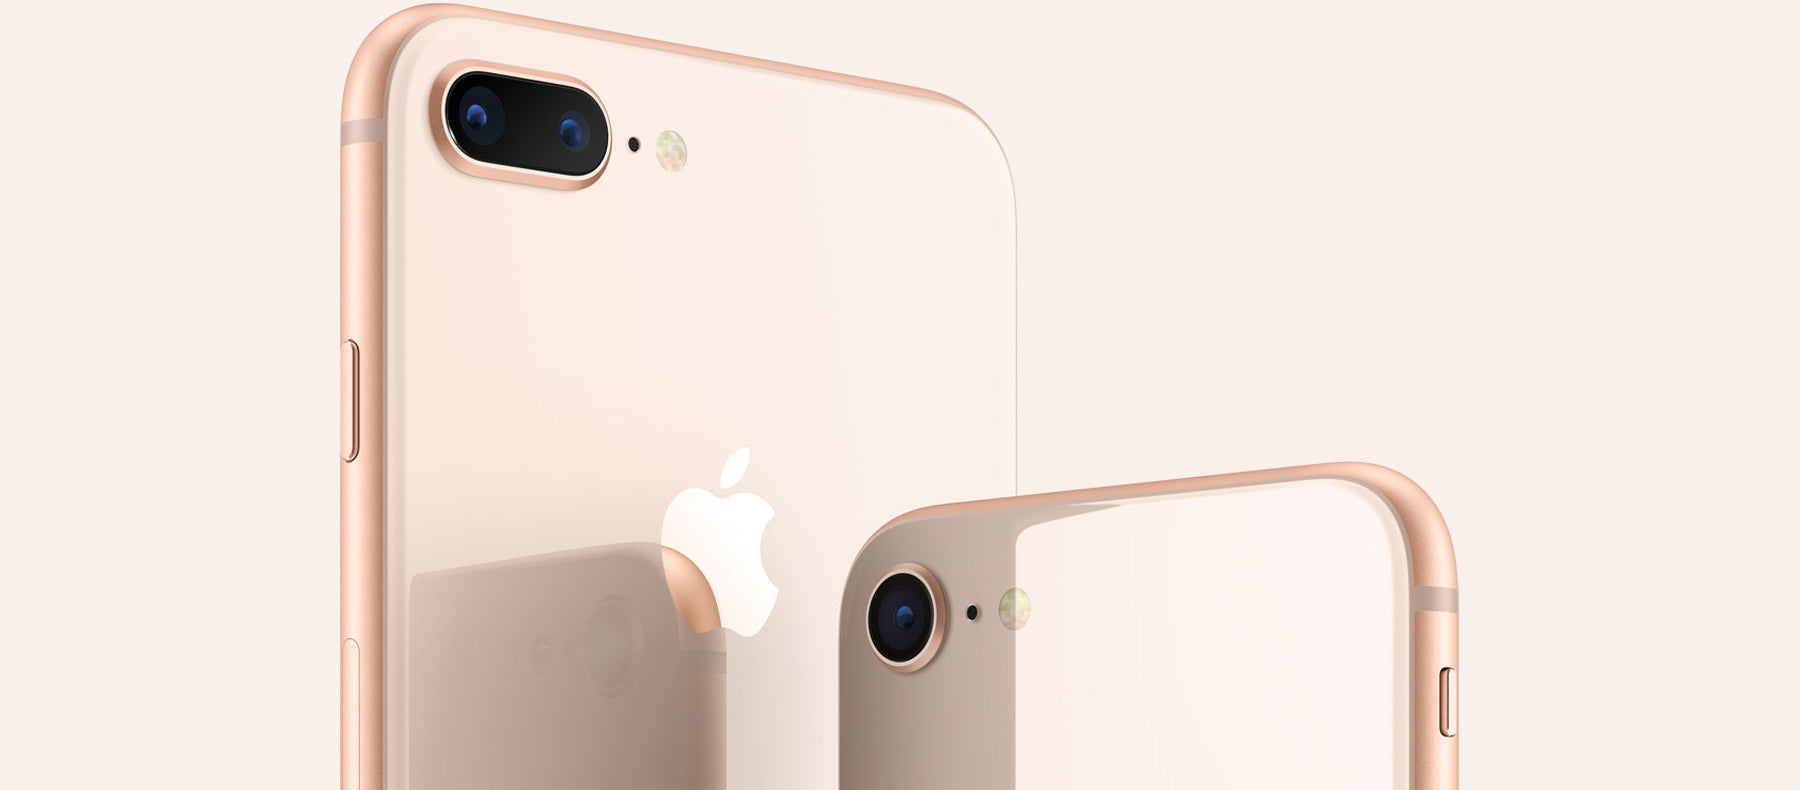 Iphone 8 Amp Iphone 8 Plus Cases Covers Screen Protectors